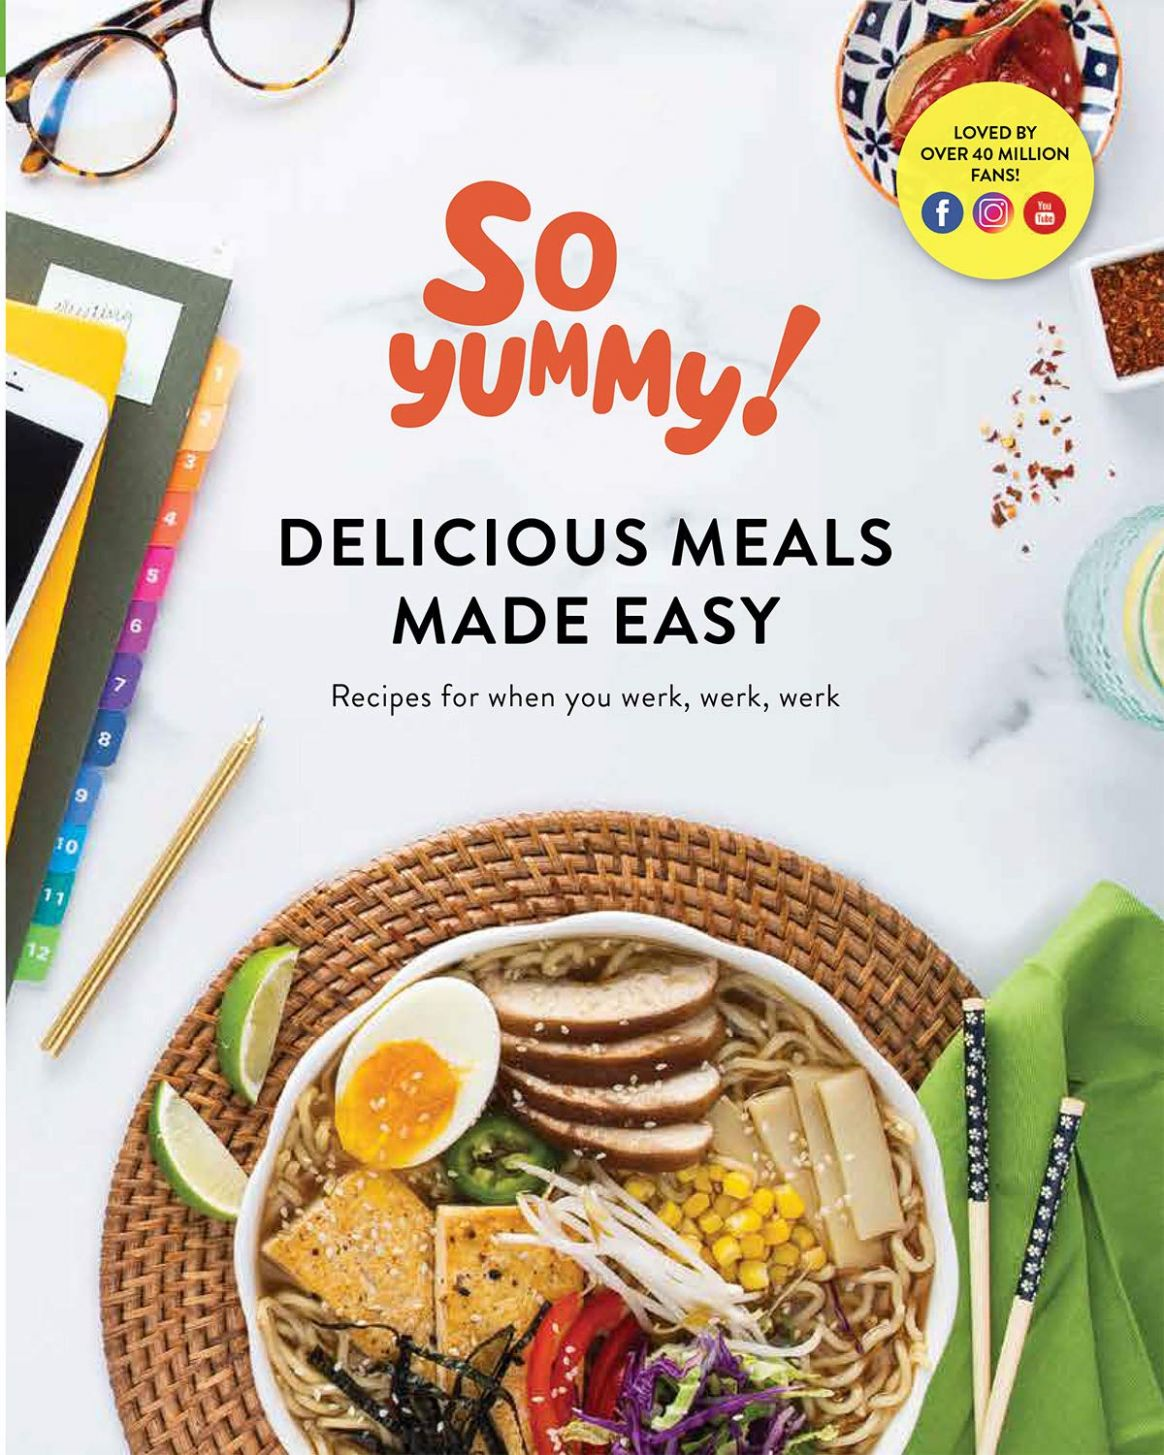 SO YUMMY DELICIOUS MEALS MADE EASY RECIPES FOR WHEN YOU WERK, WERK ...